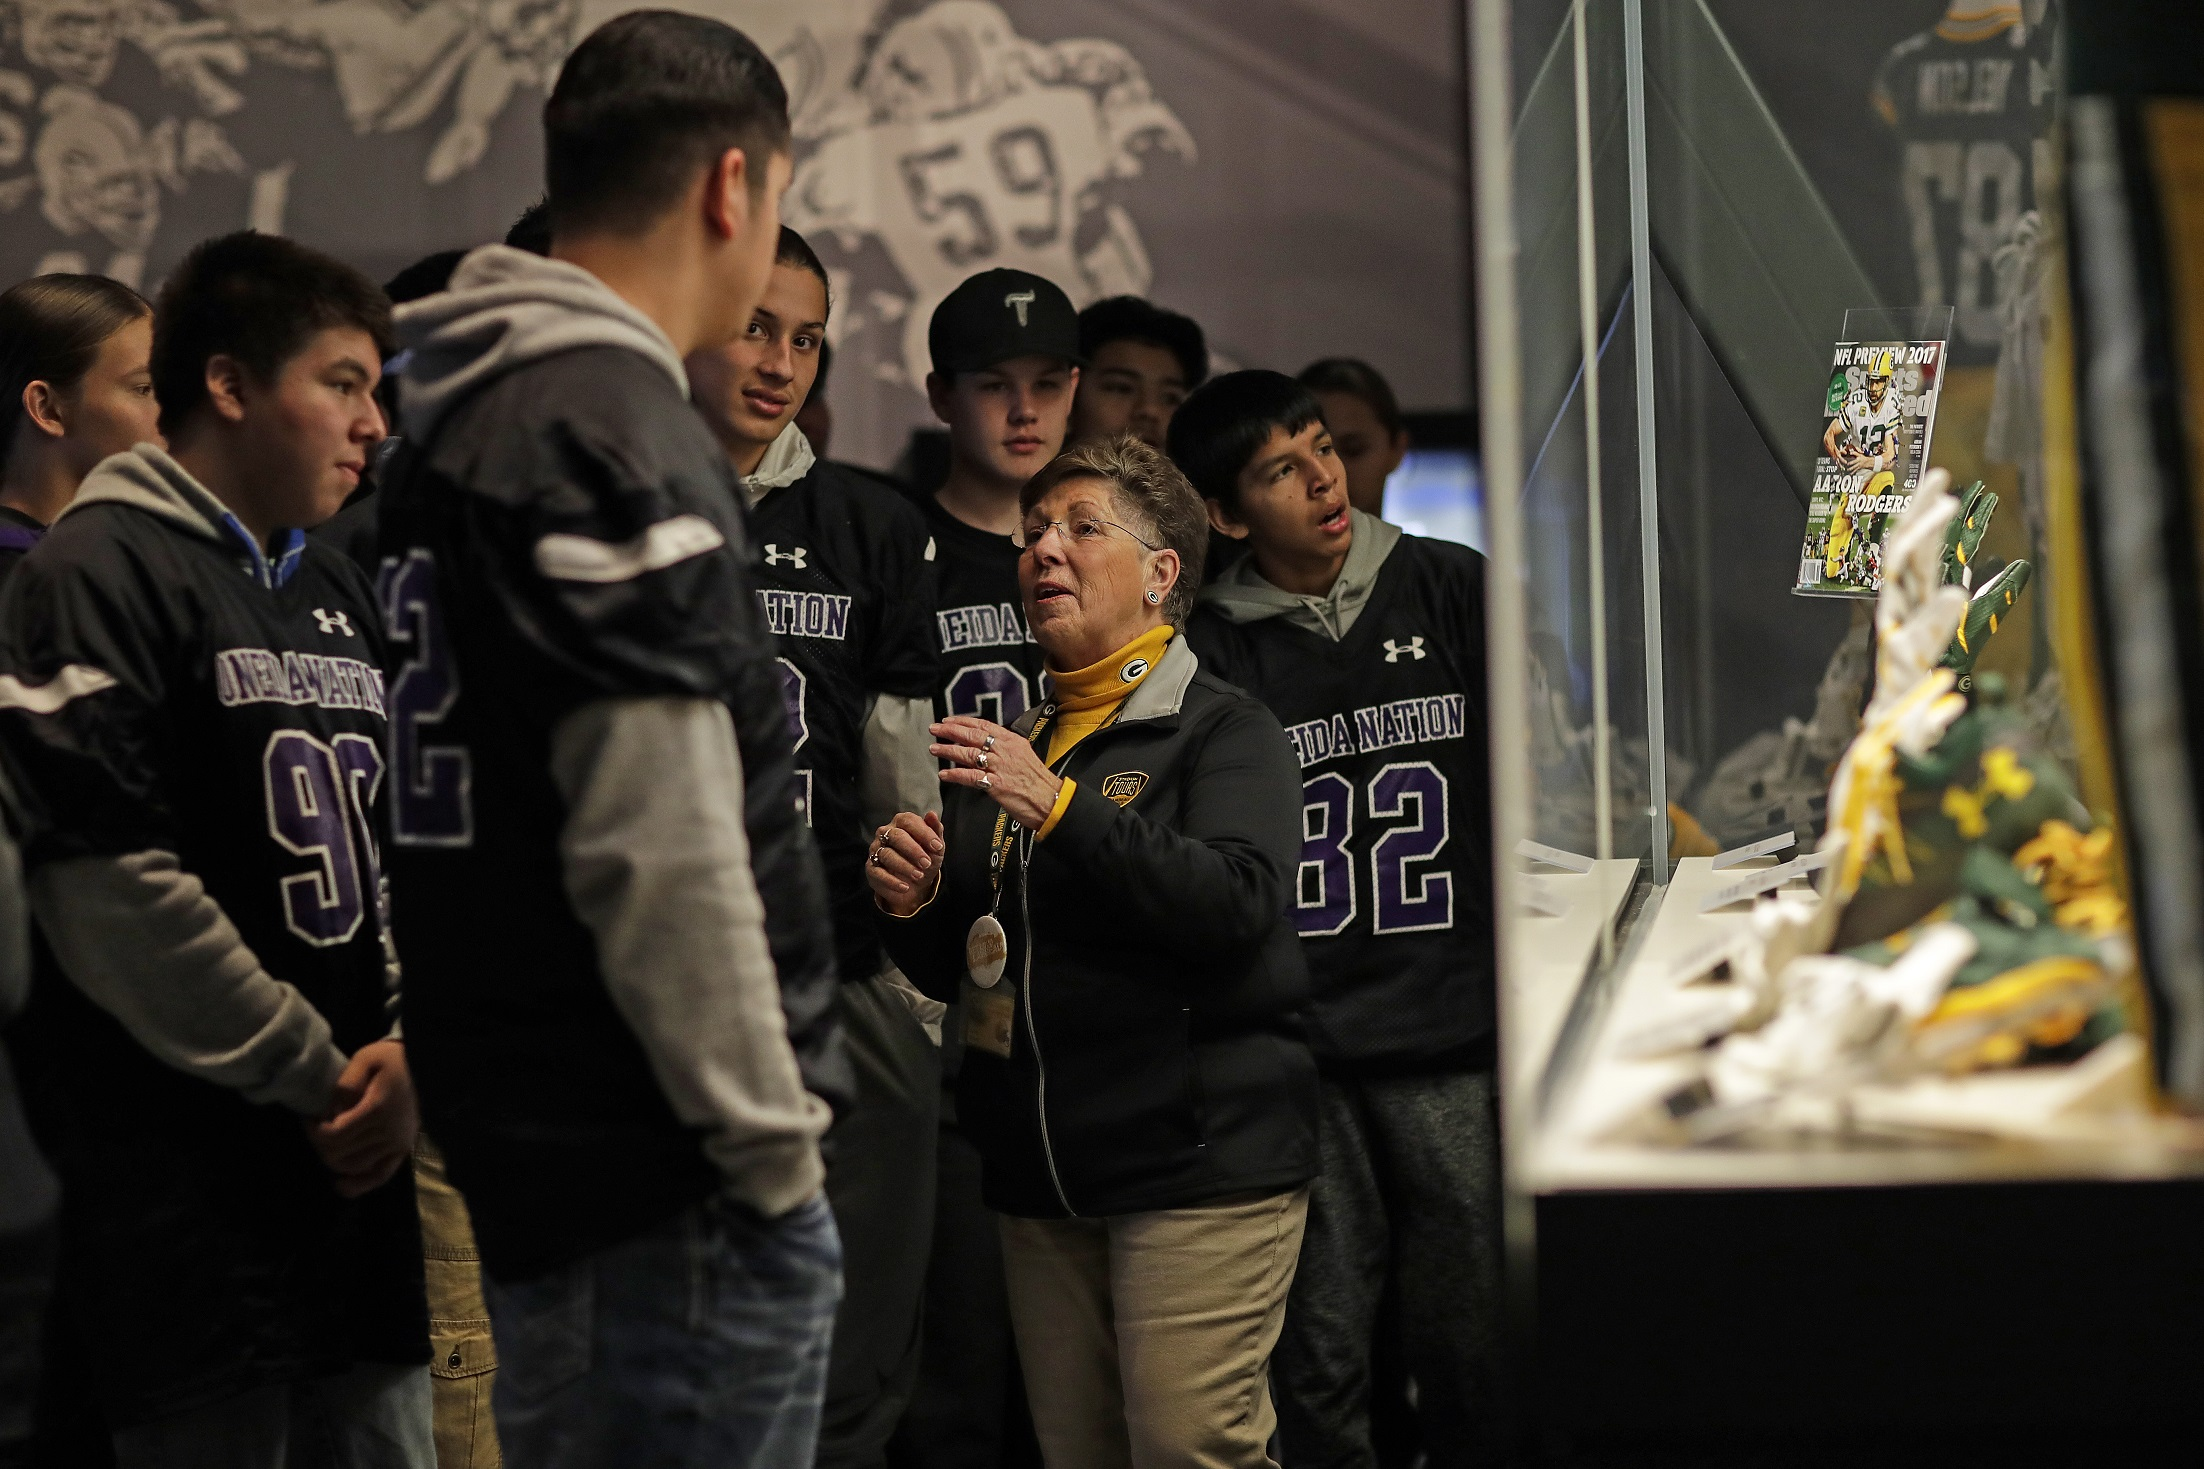 Youth listening to a tour guide in the Green Bay Packers Hall of Fame.